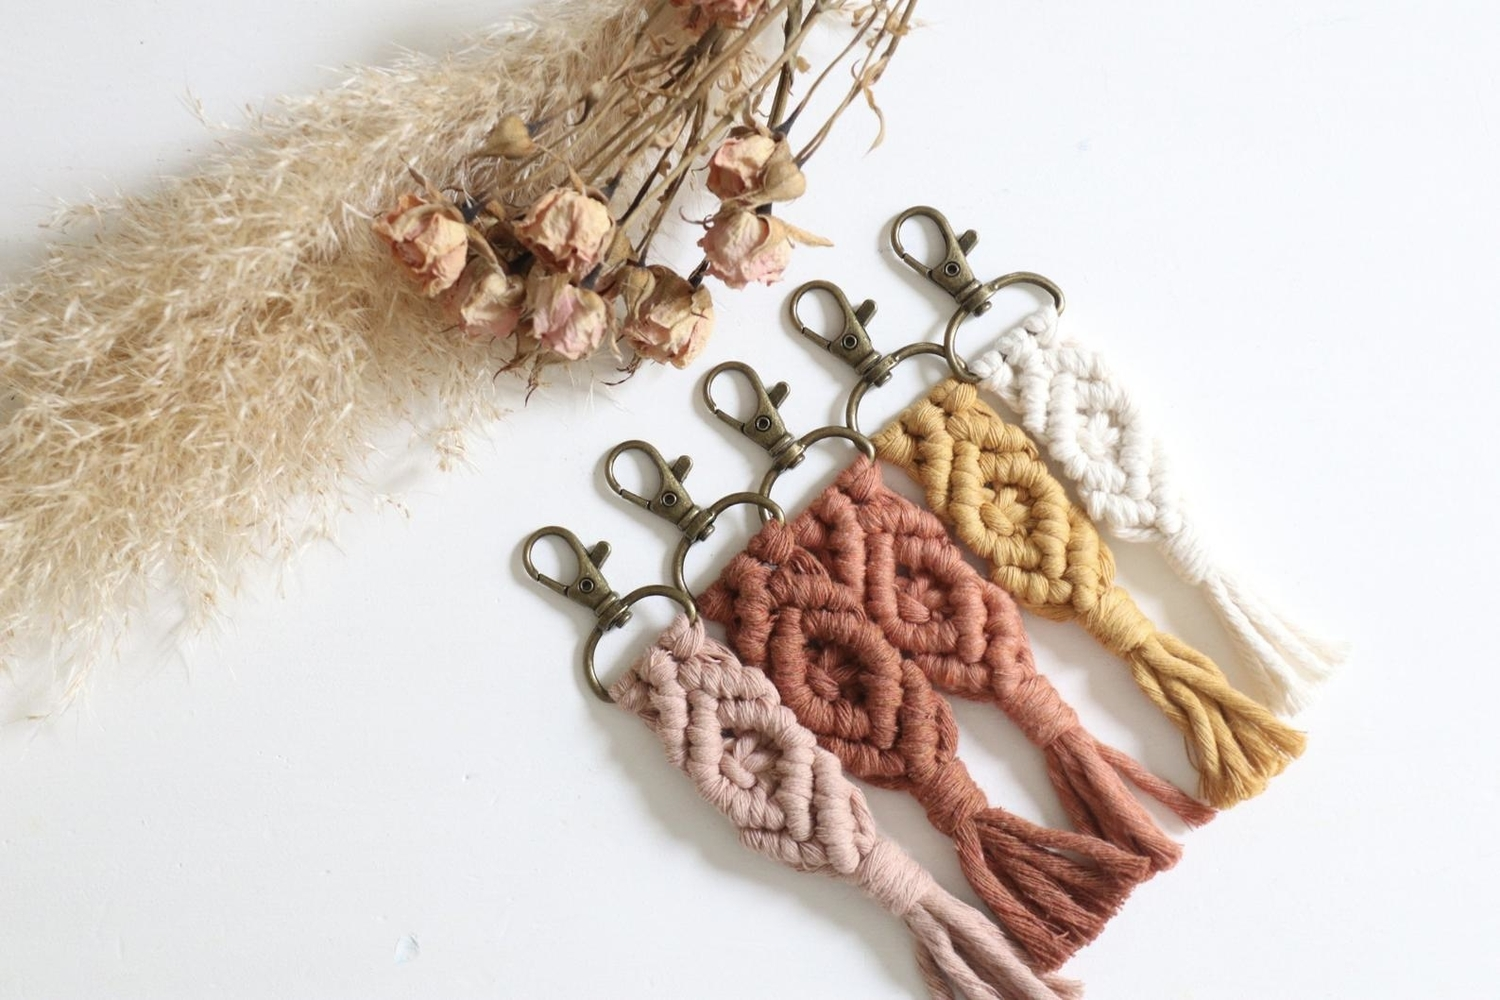 Macrame keychain wedding favors